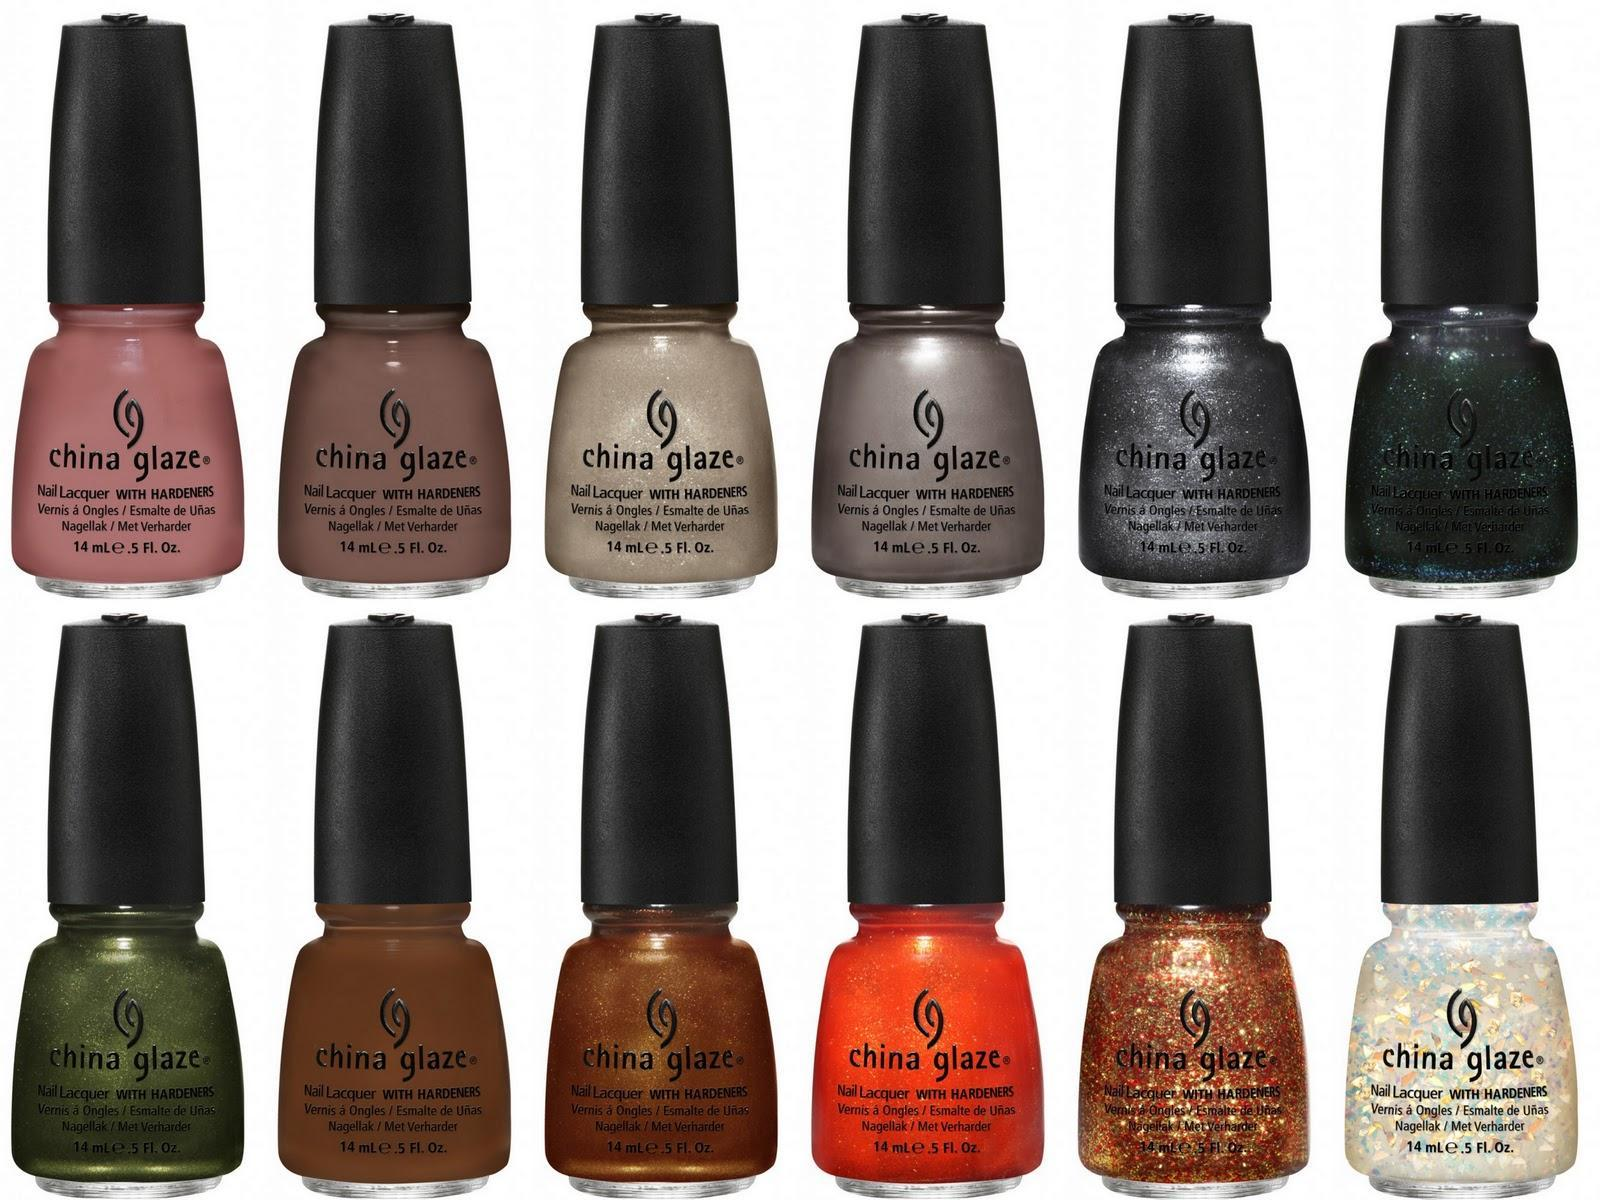 which nail polish should u wear to the hunger games premere?